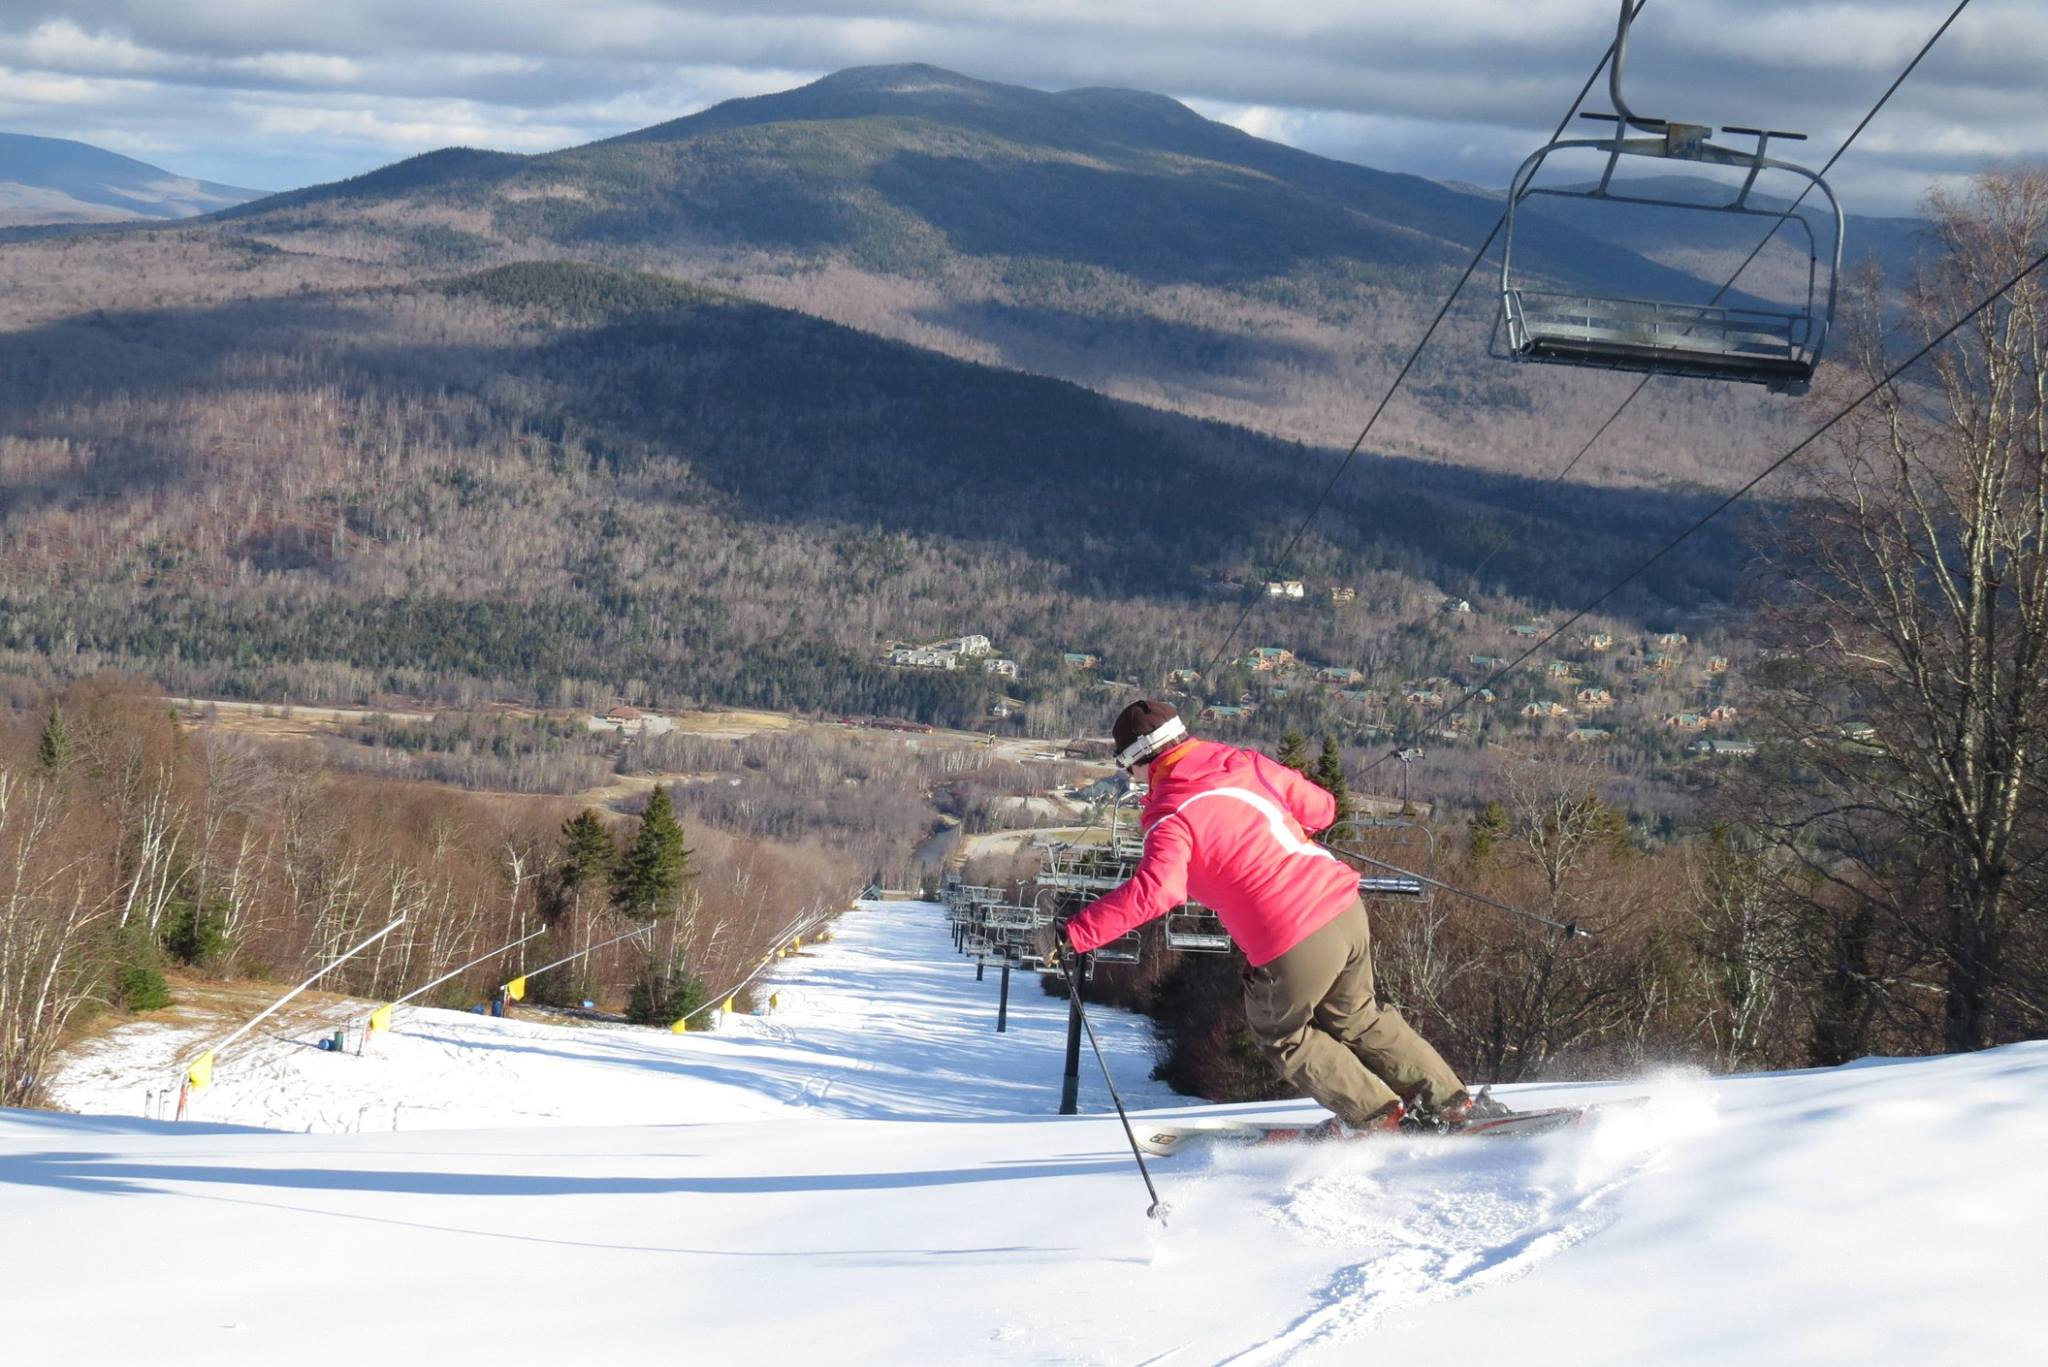 bretton woods opens tomorrow with free skiing | first tracks